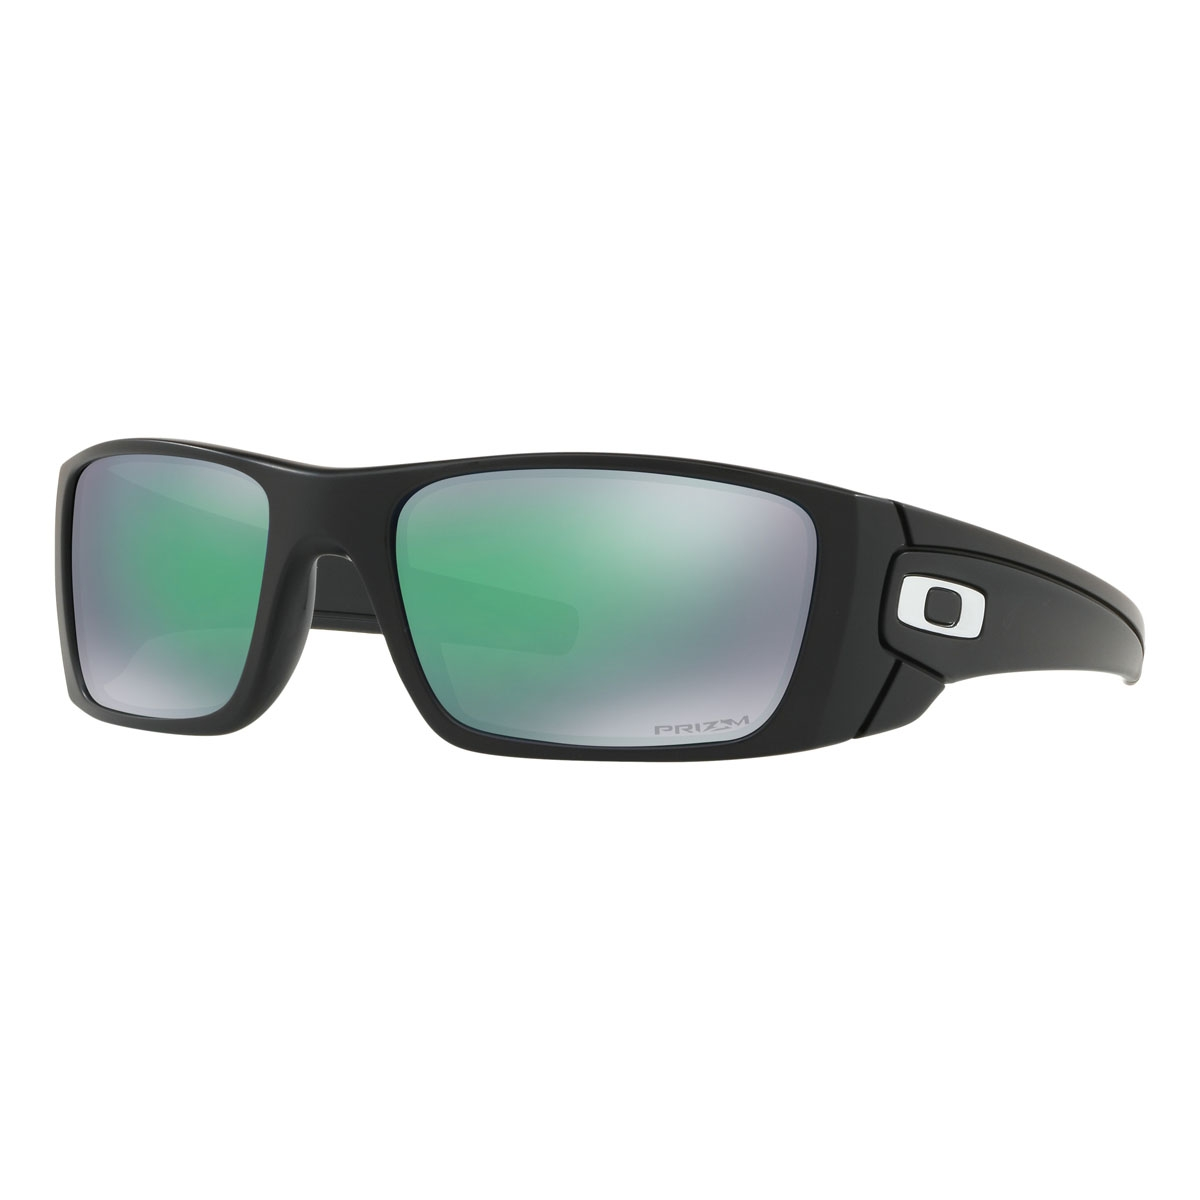 d4787145431 Image of Oakley Fuel Cell Lifestyle Men s Prizm Sunglasses - Matte Black  Frame PRIZM Jade